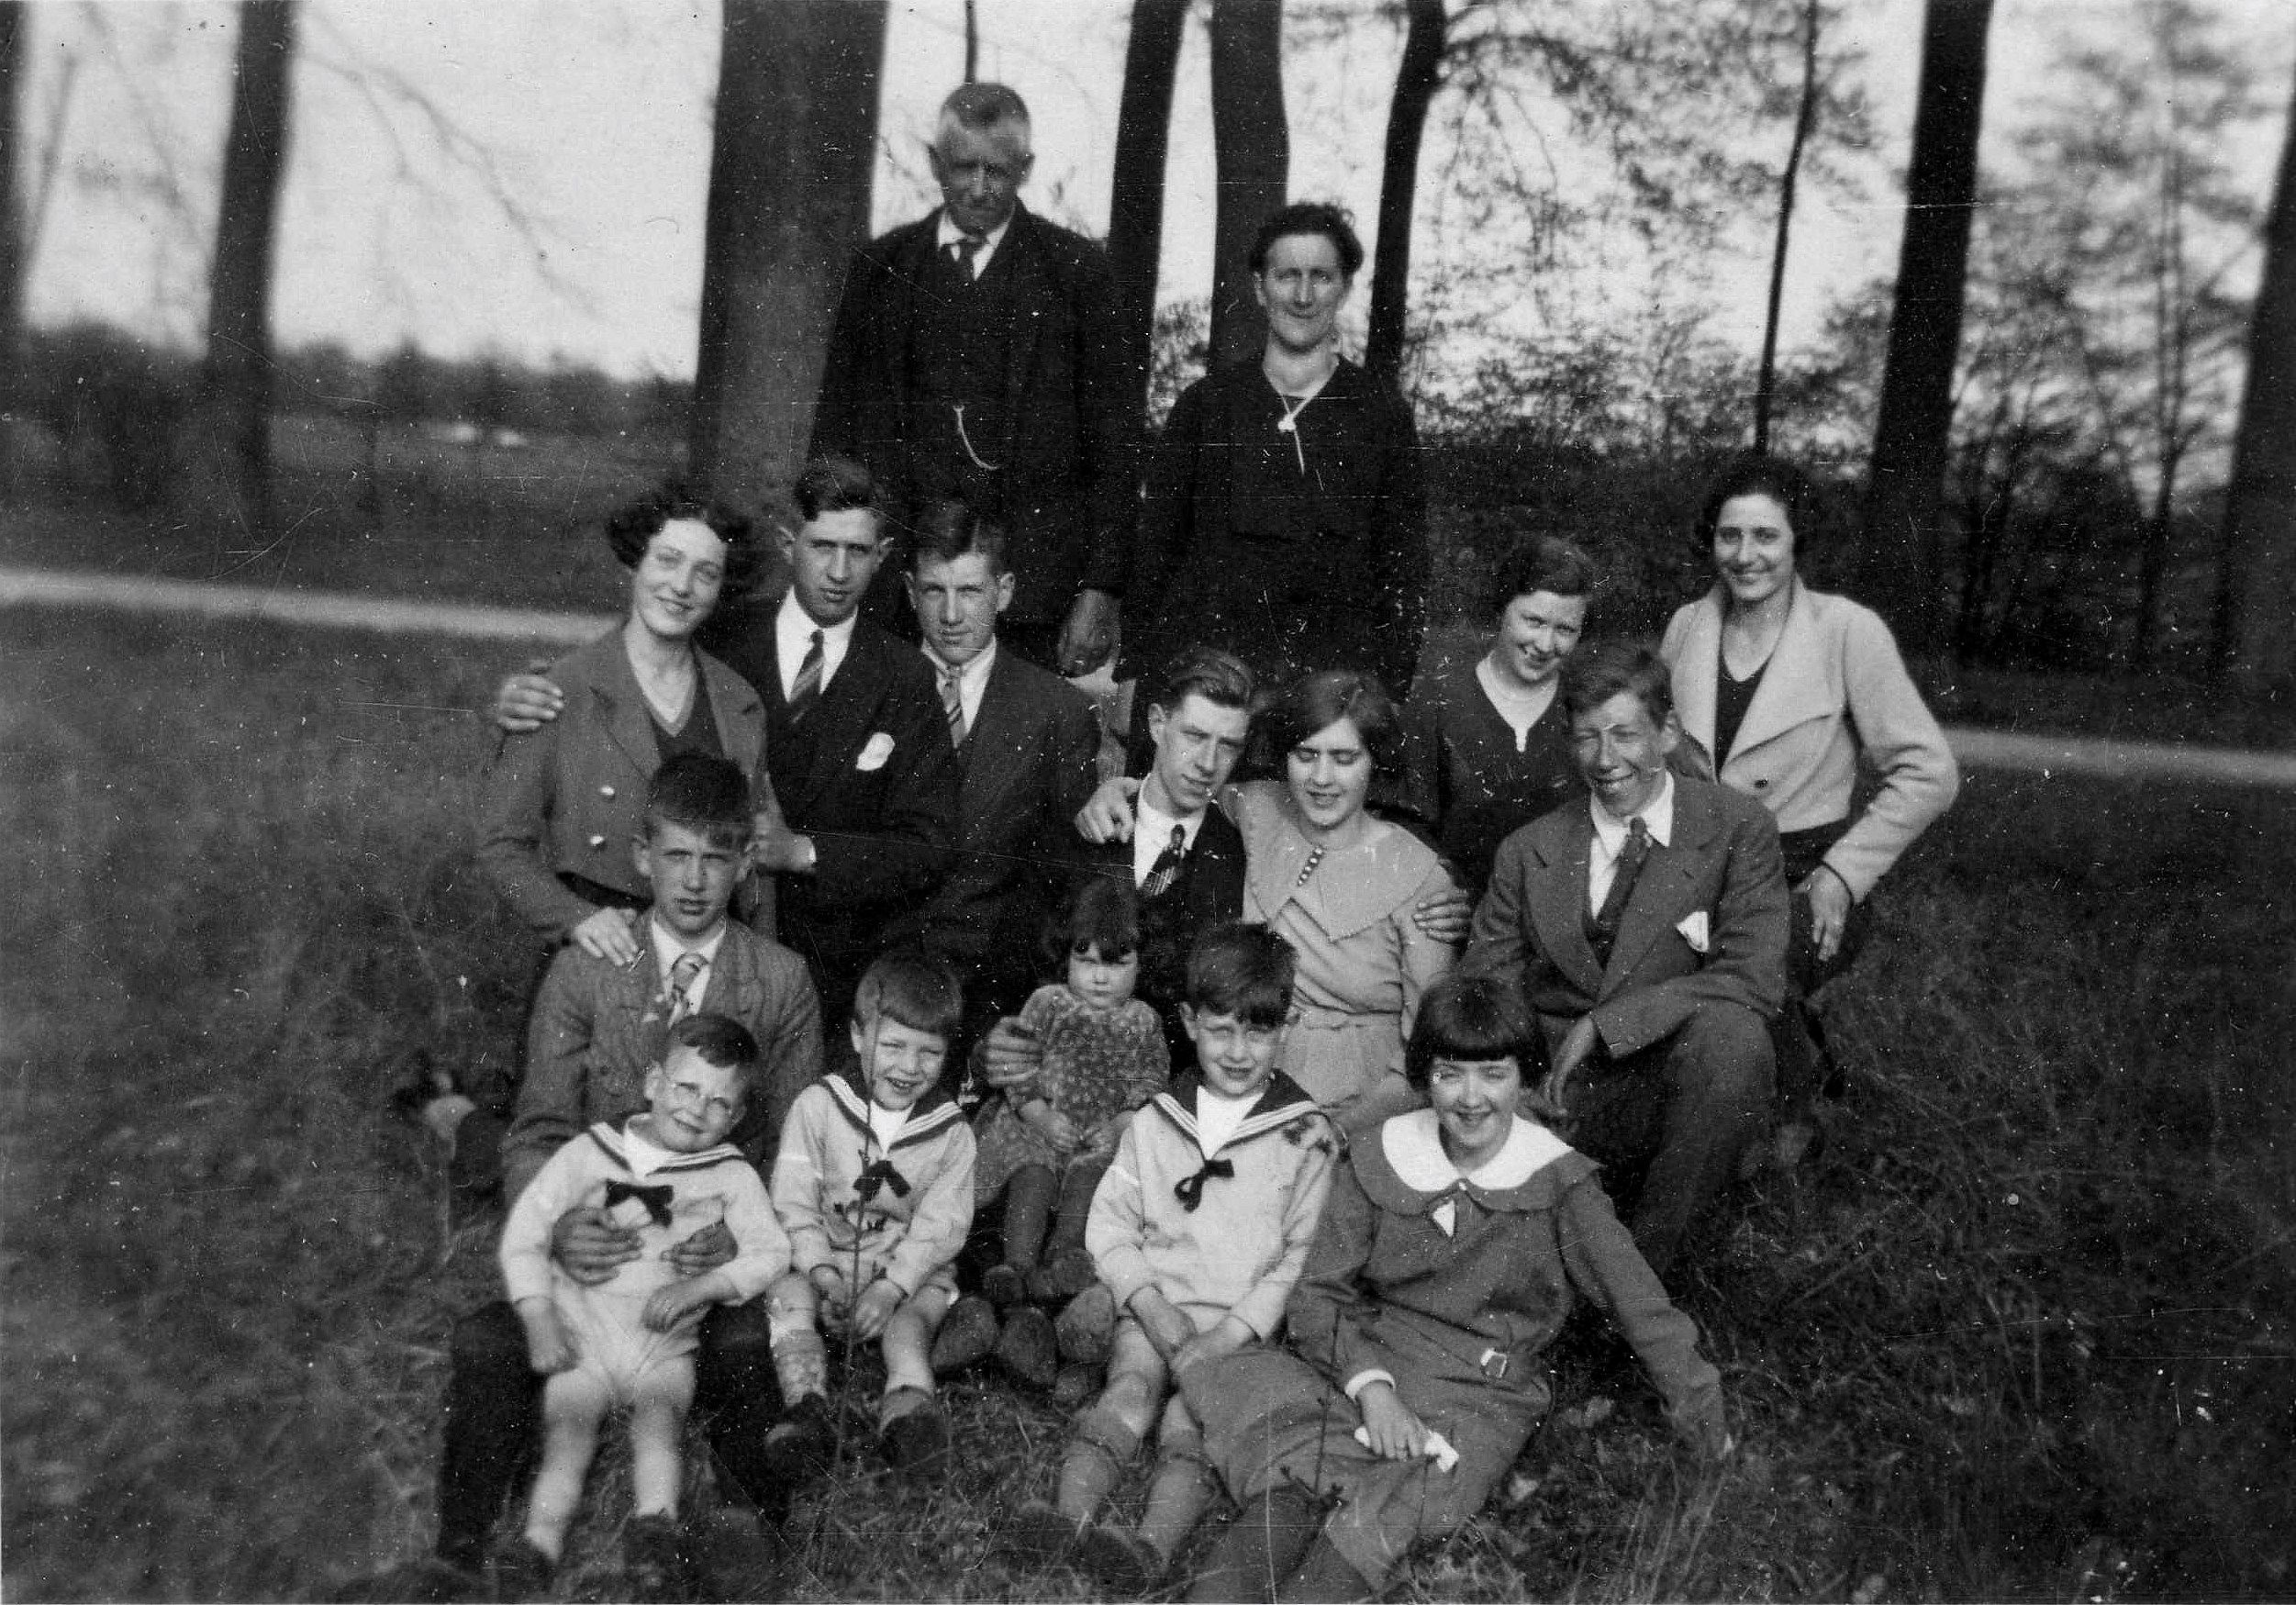 Familie Brouwer - Agterberg 1935